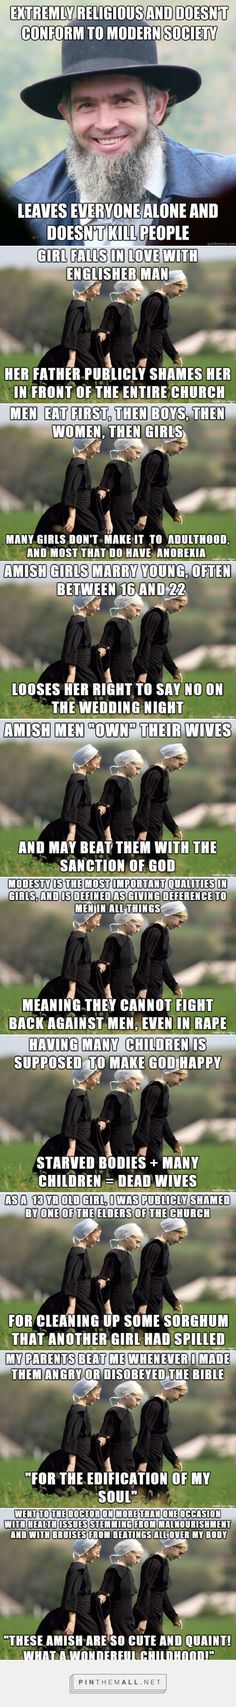 Religion everywhere is problematic. A friend of mine lives in Amish country and says it is also common for the Amish to beat their animals. I guess girls are just an extension of the livestock to some of them.